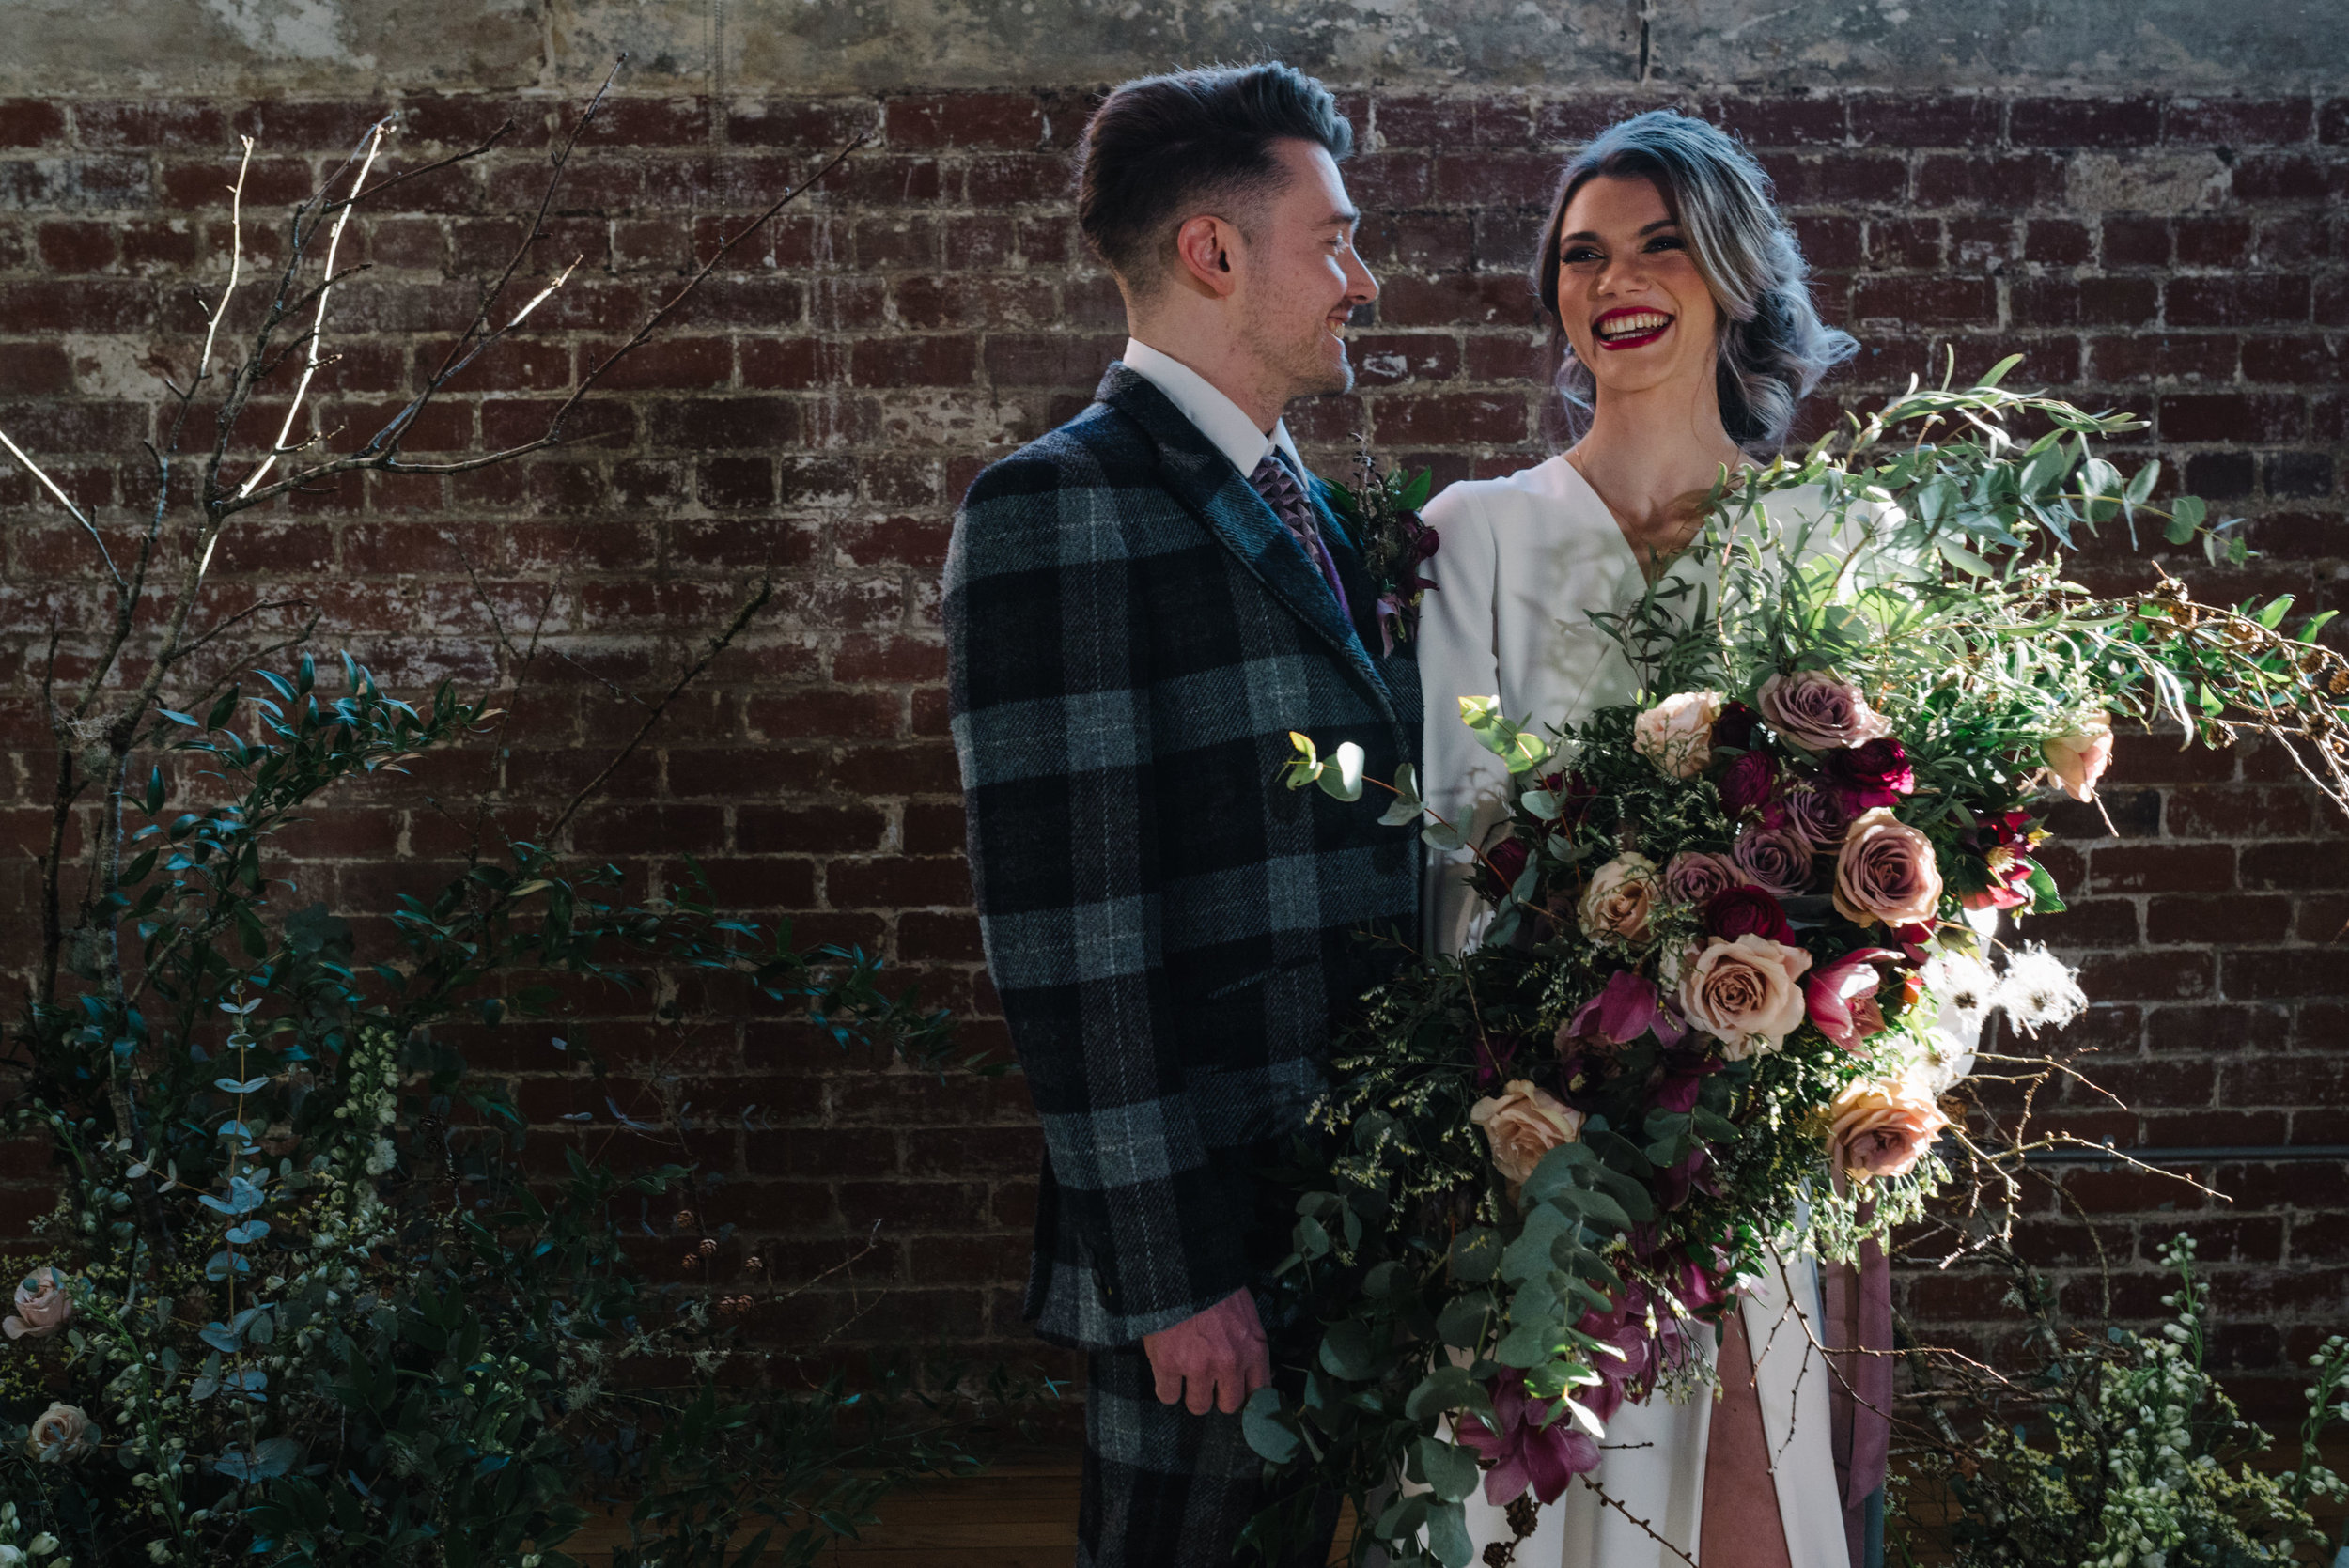 Modern Wedding Inspiration Shoot in Glasgow Brewery With a Frill Installation, Candy Floss and Neon 00129.jpg